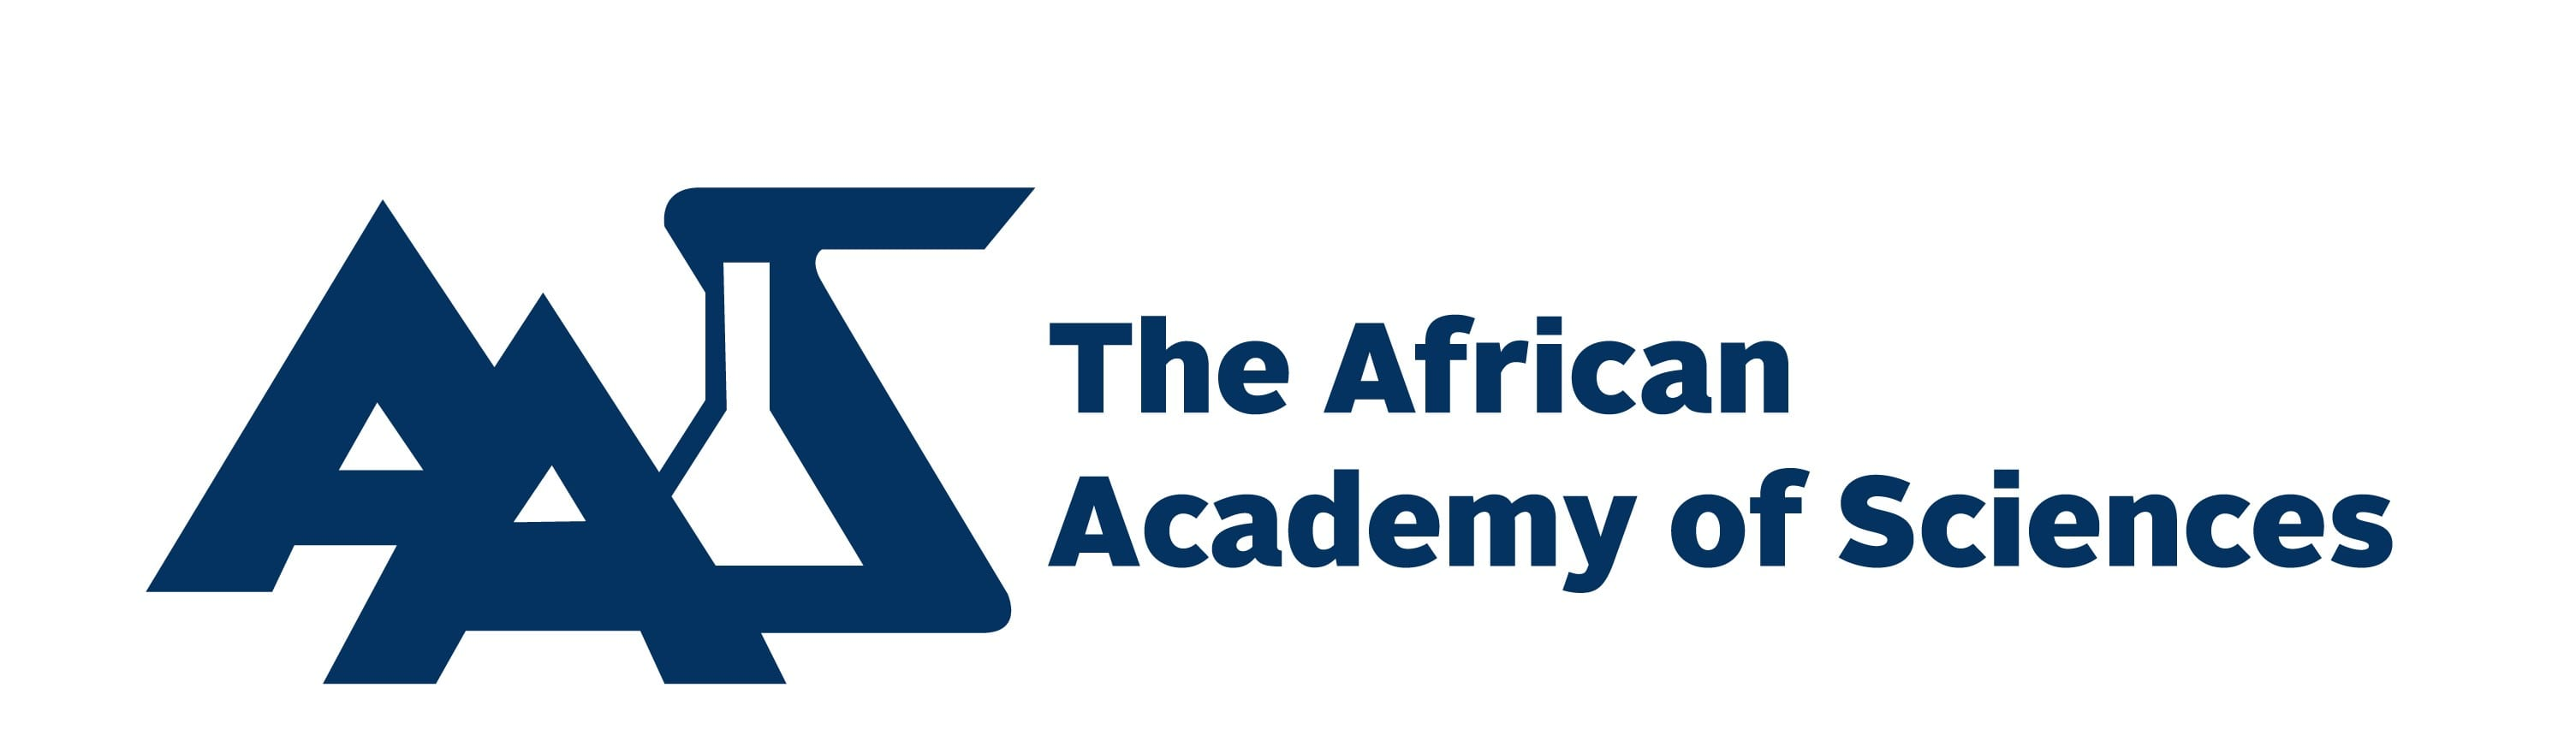 The African Academy of Sciences (AAS) Olusegun Obasanjo Reward for Scientific Discovery and/or Technological Development